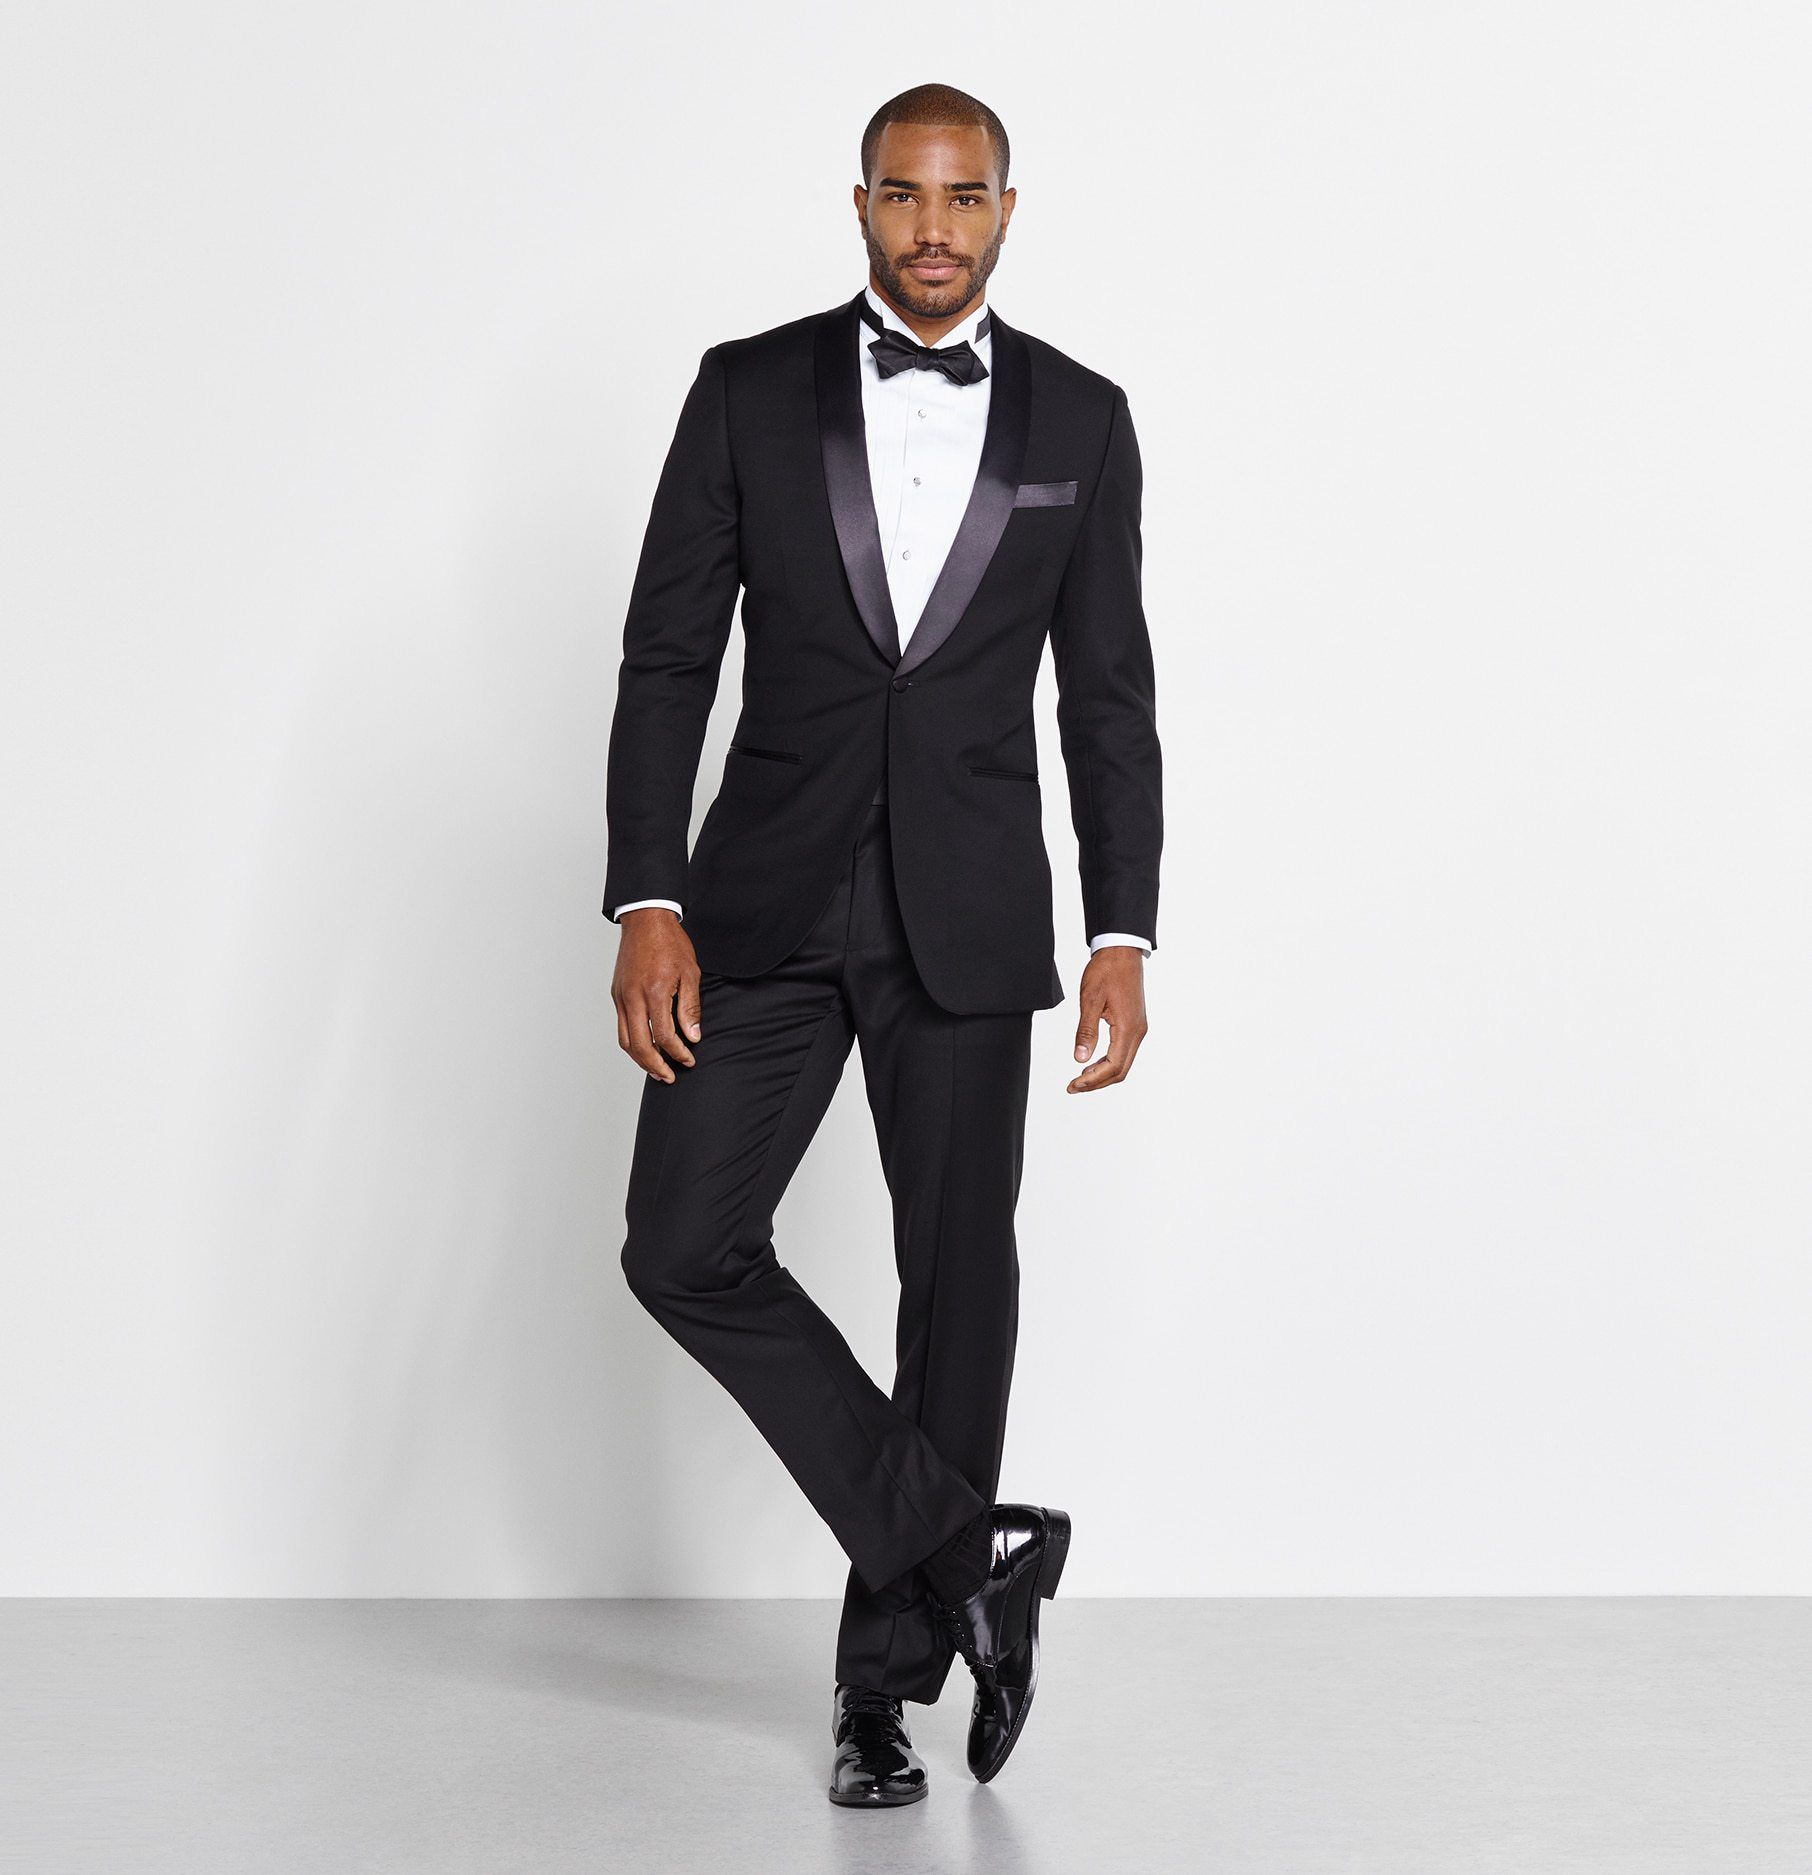 Tuxedo Styles For 2020 A Complete Guide Tuxedo Styles Groom Suit Black Classy Suits